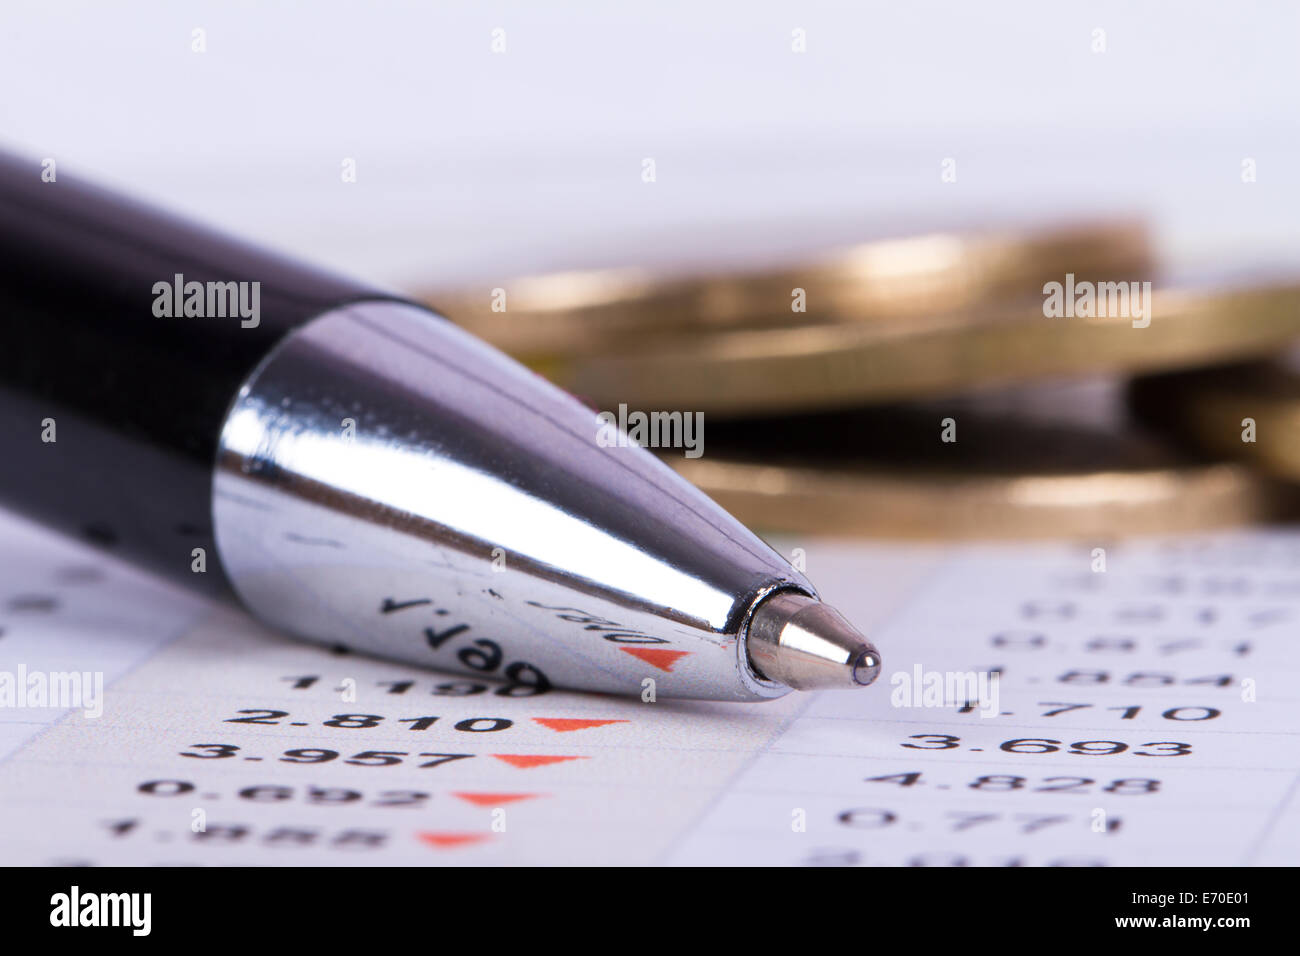 Close up view of pen on financial data analysis and coins behind. - Stock Image